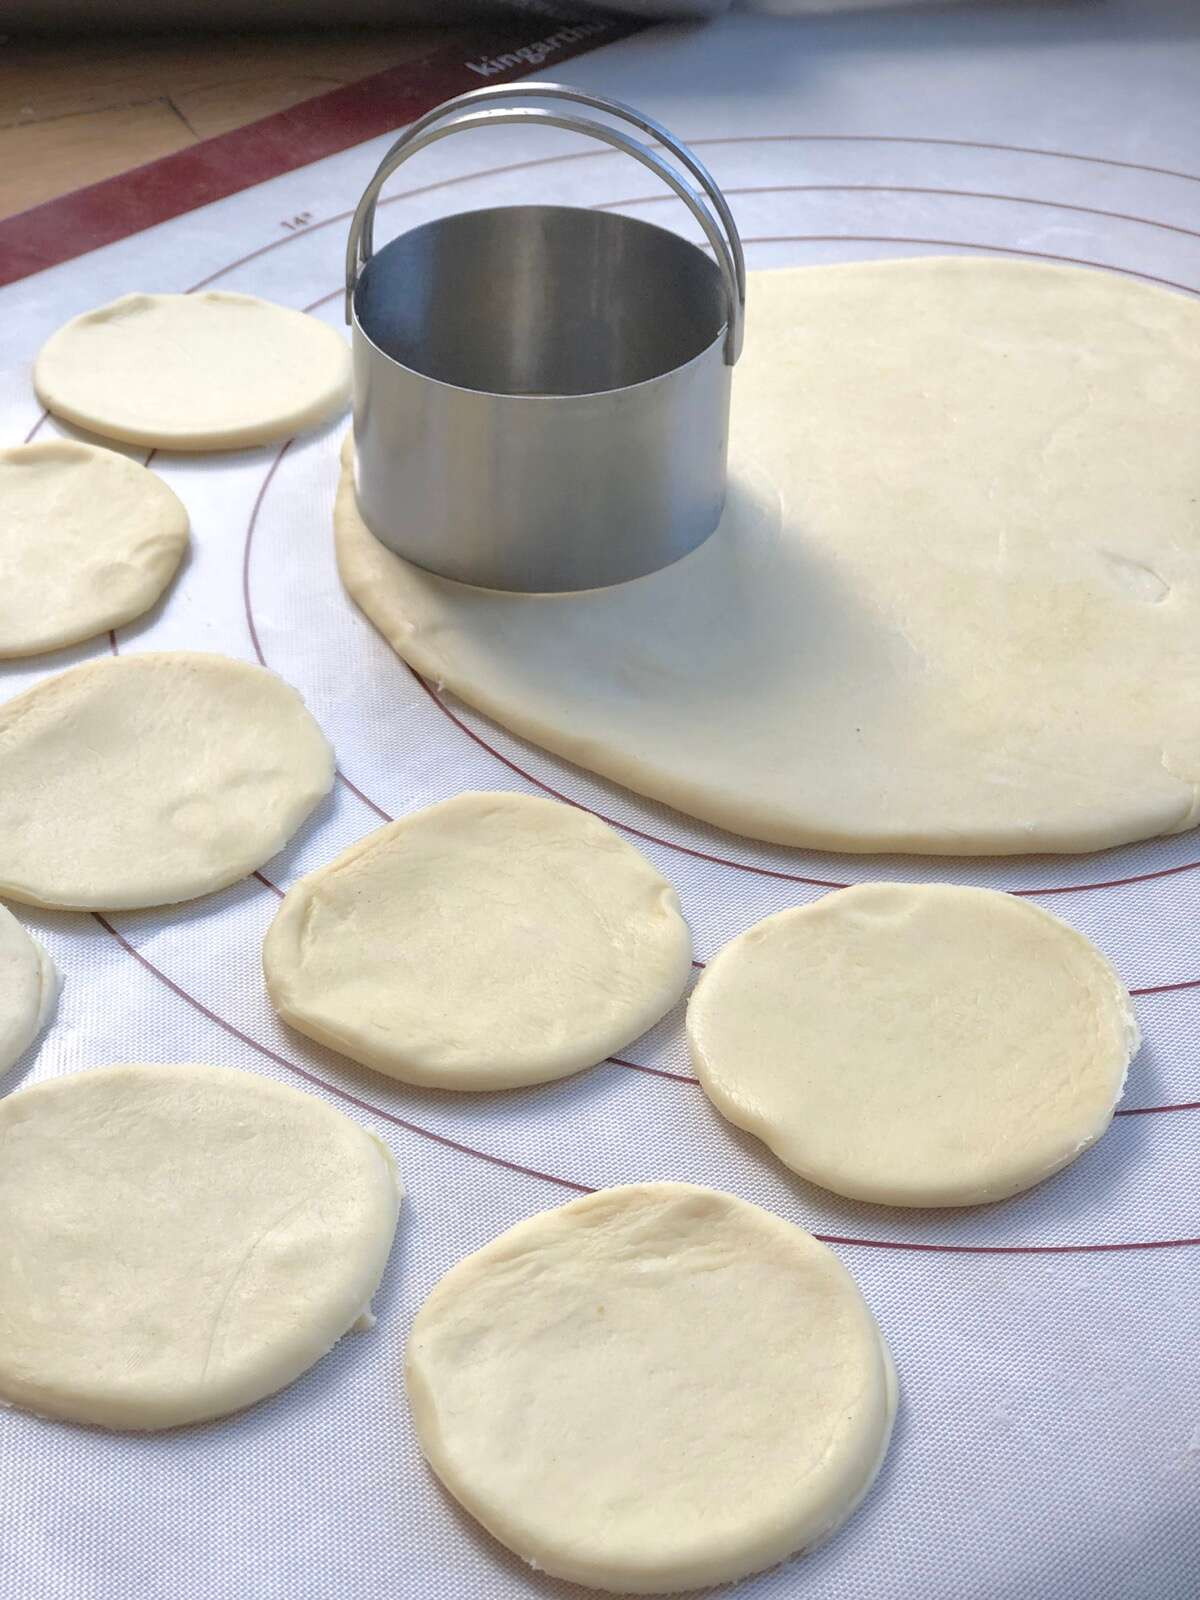 Rolled pierogi dough on a silicone mat being cut with a round biscuit cutter.